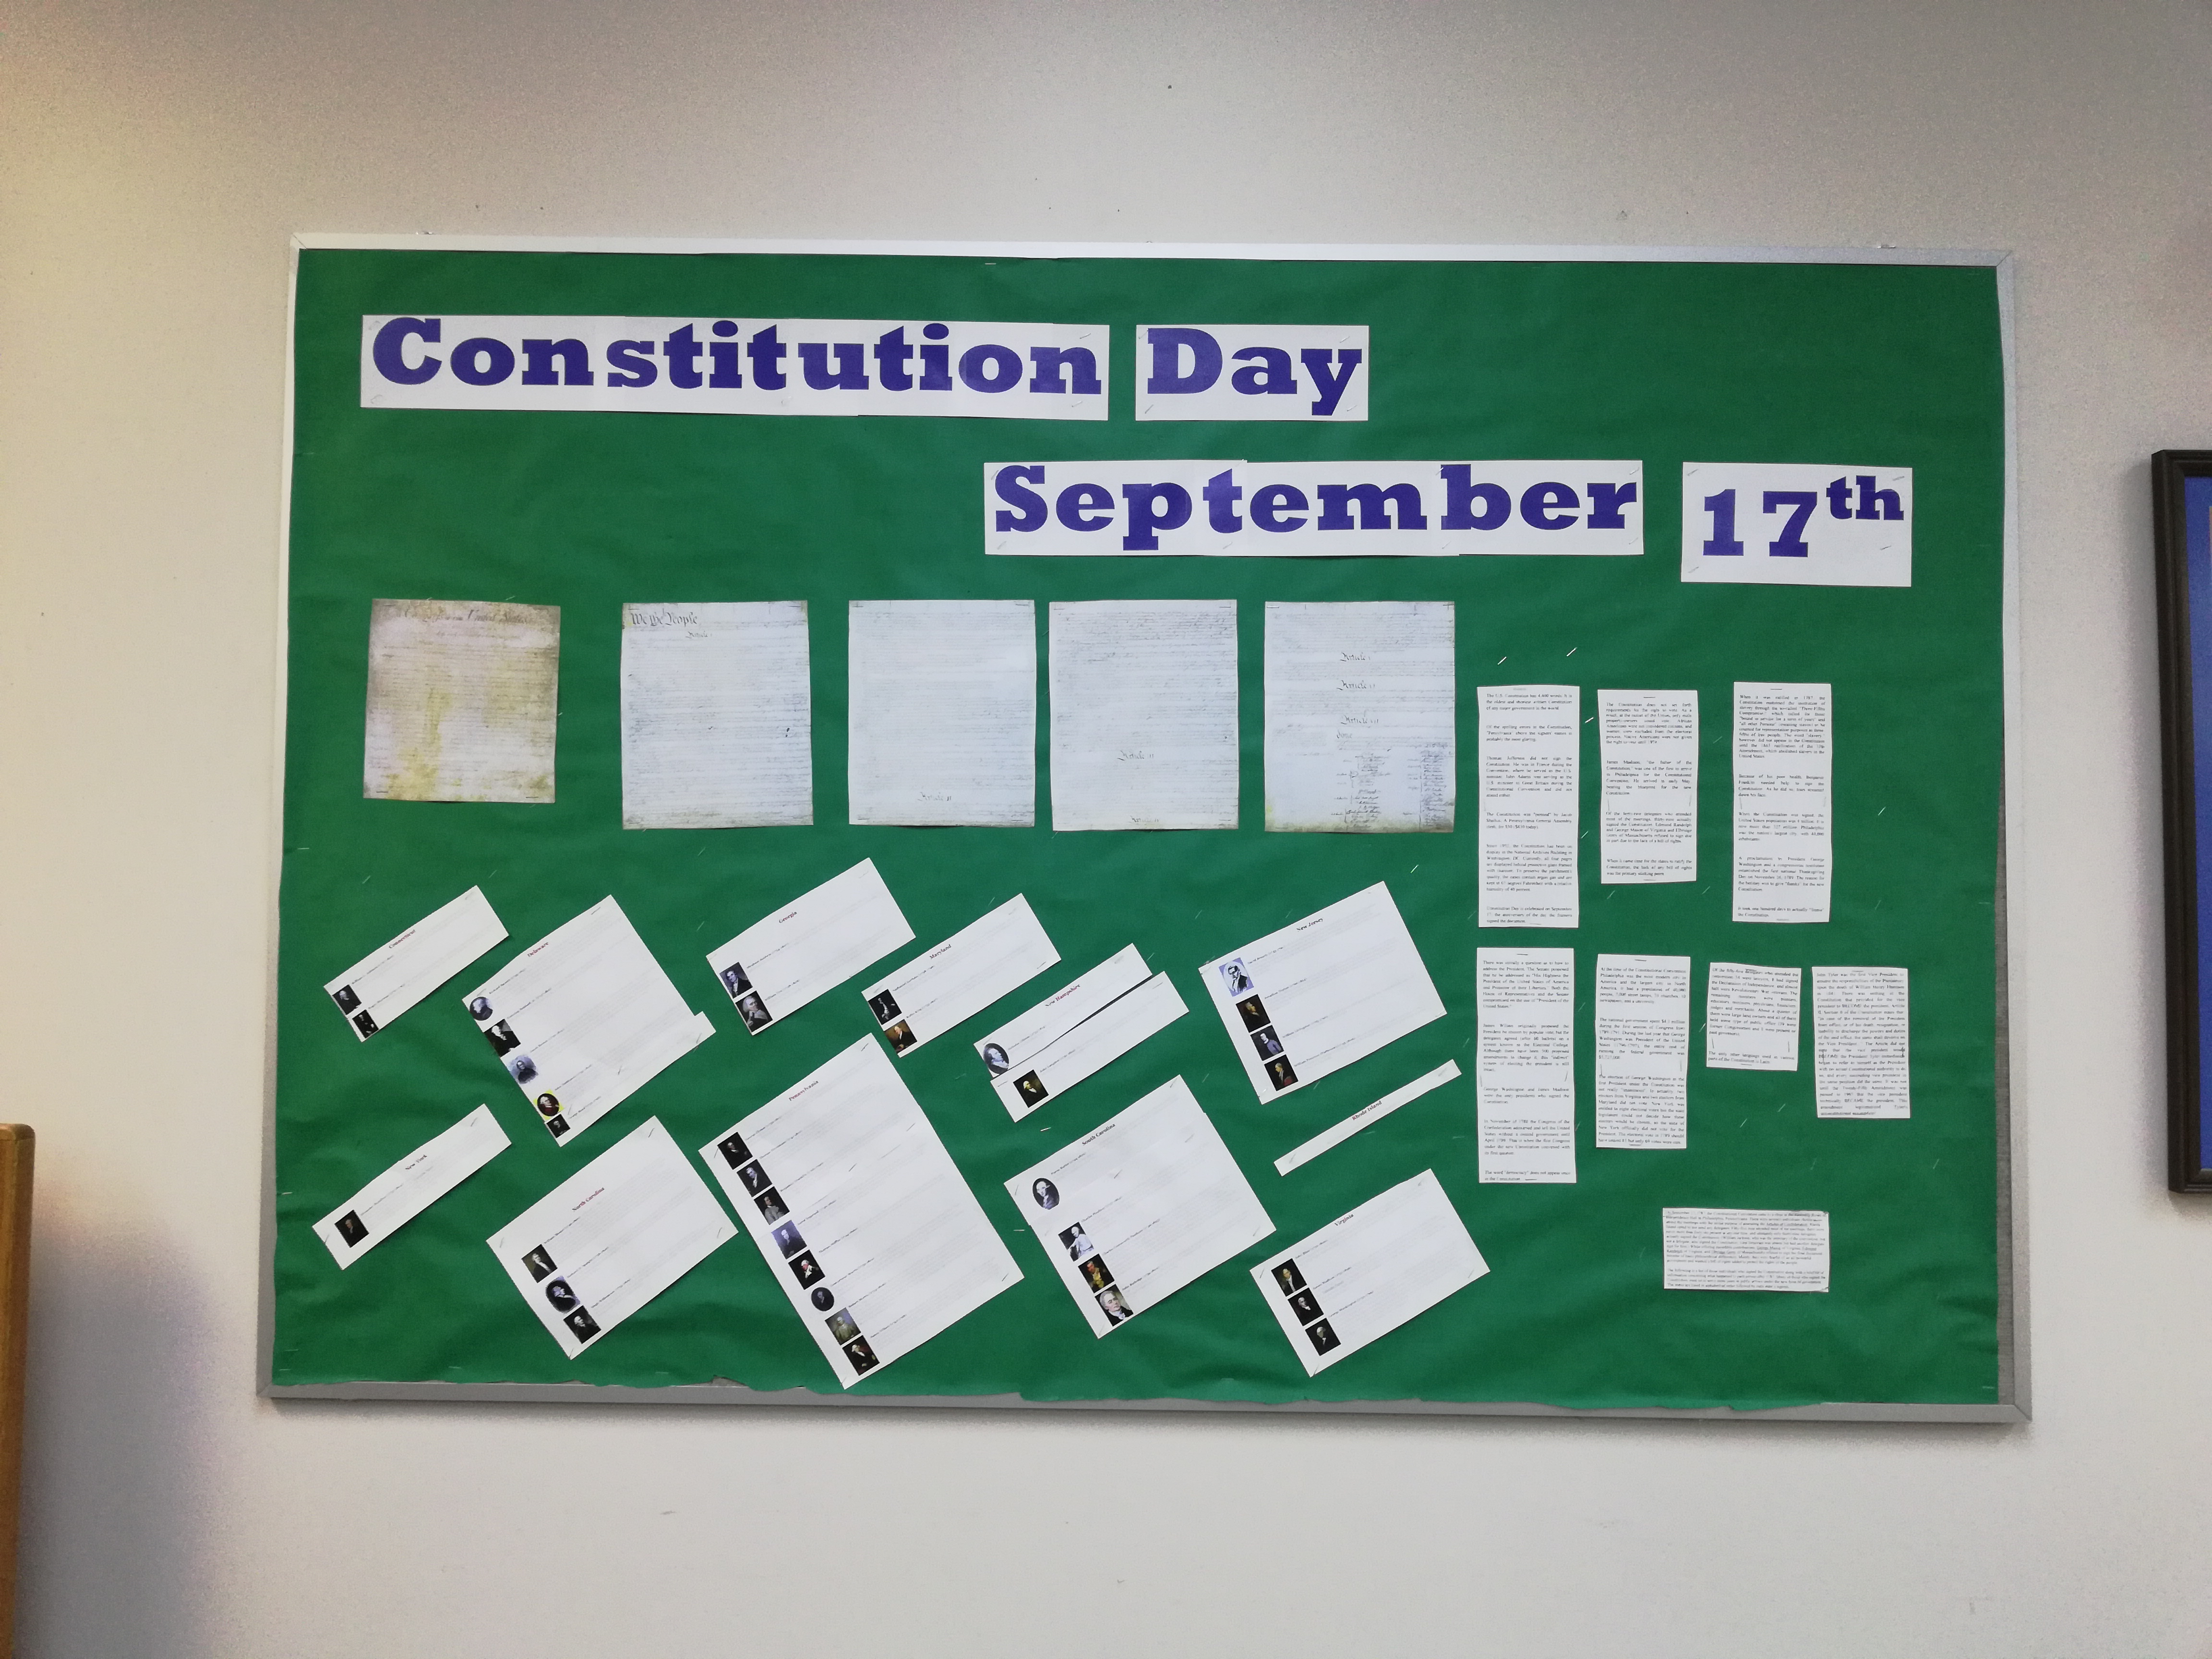 """Constitution Day and Citizenship Day is observed each year on September 17 to commemorate the signing of the Constitution on September 17, 1787, and """"recognize all who, by coming of age or by naturalization, have become citizens."""" Green background with blue lettering with copies of the constitution"""